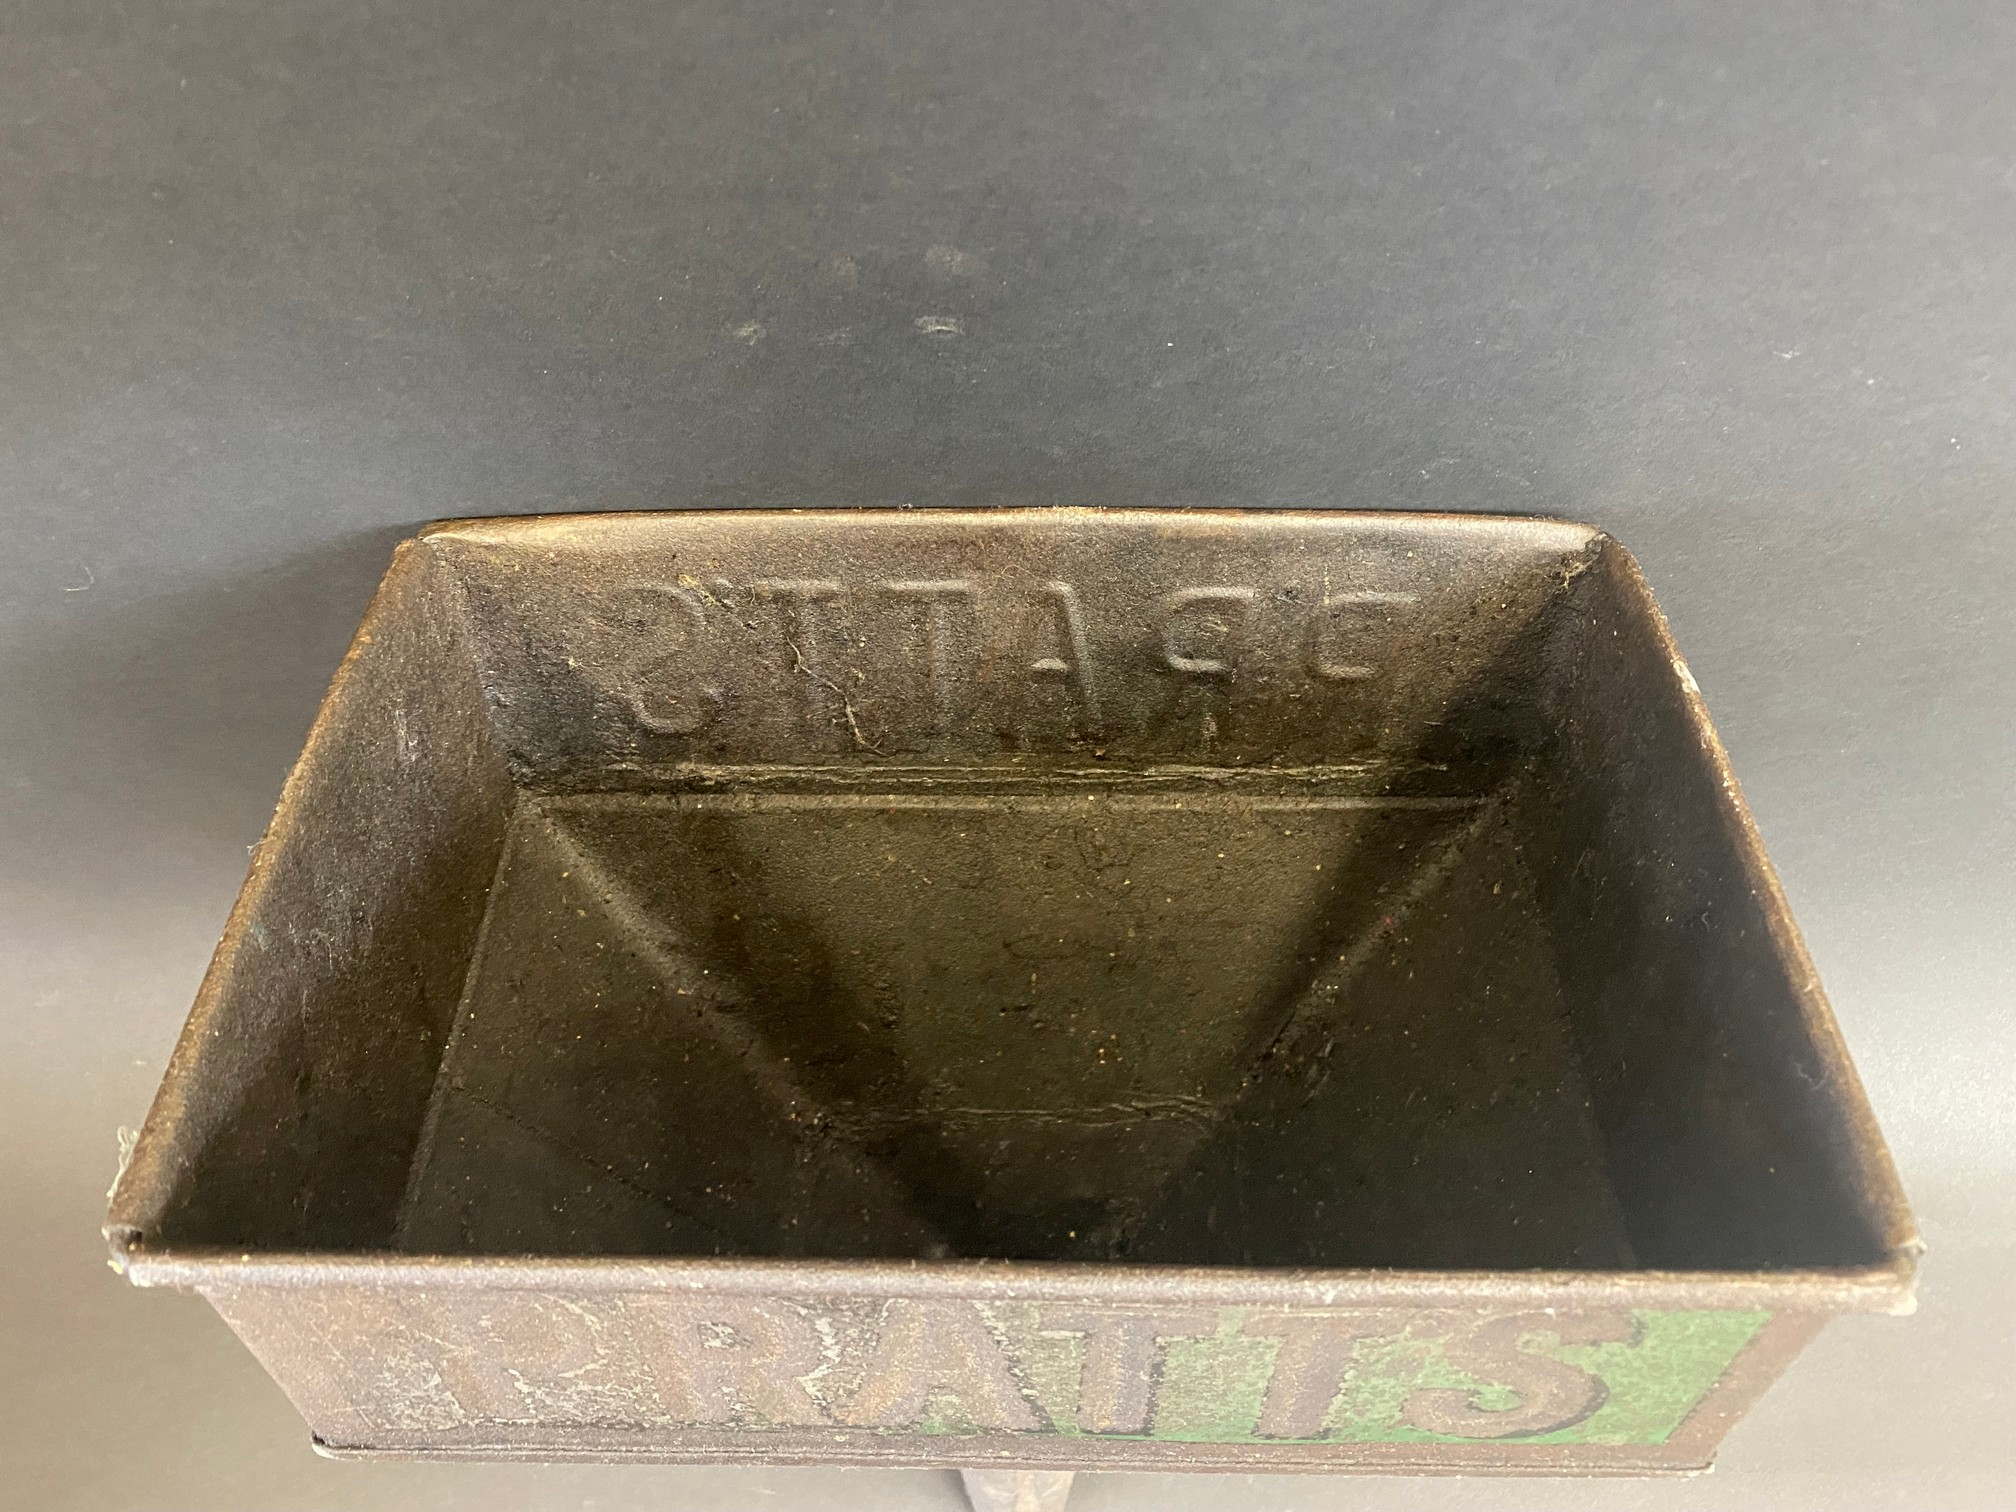 A Pratts rectangular funnel with embossed lettering and traces of original green paint. - Image 2 of 4